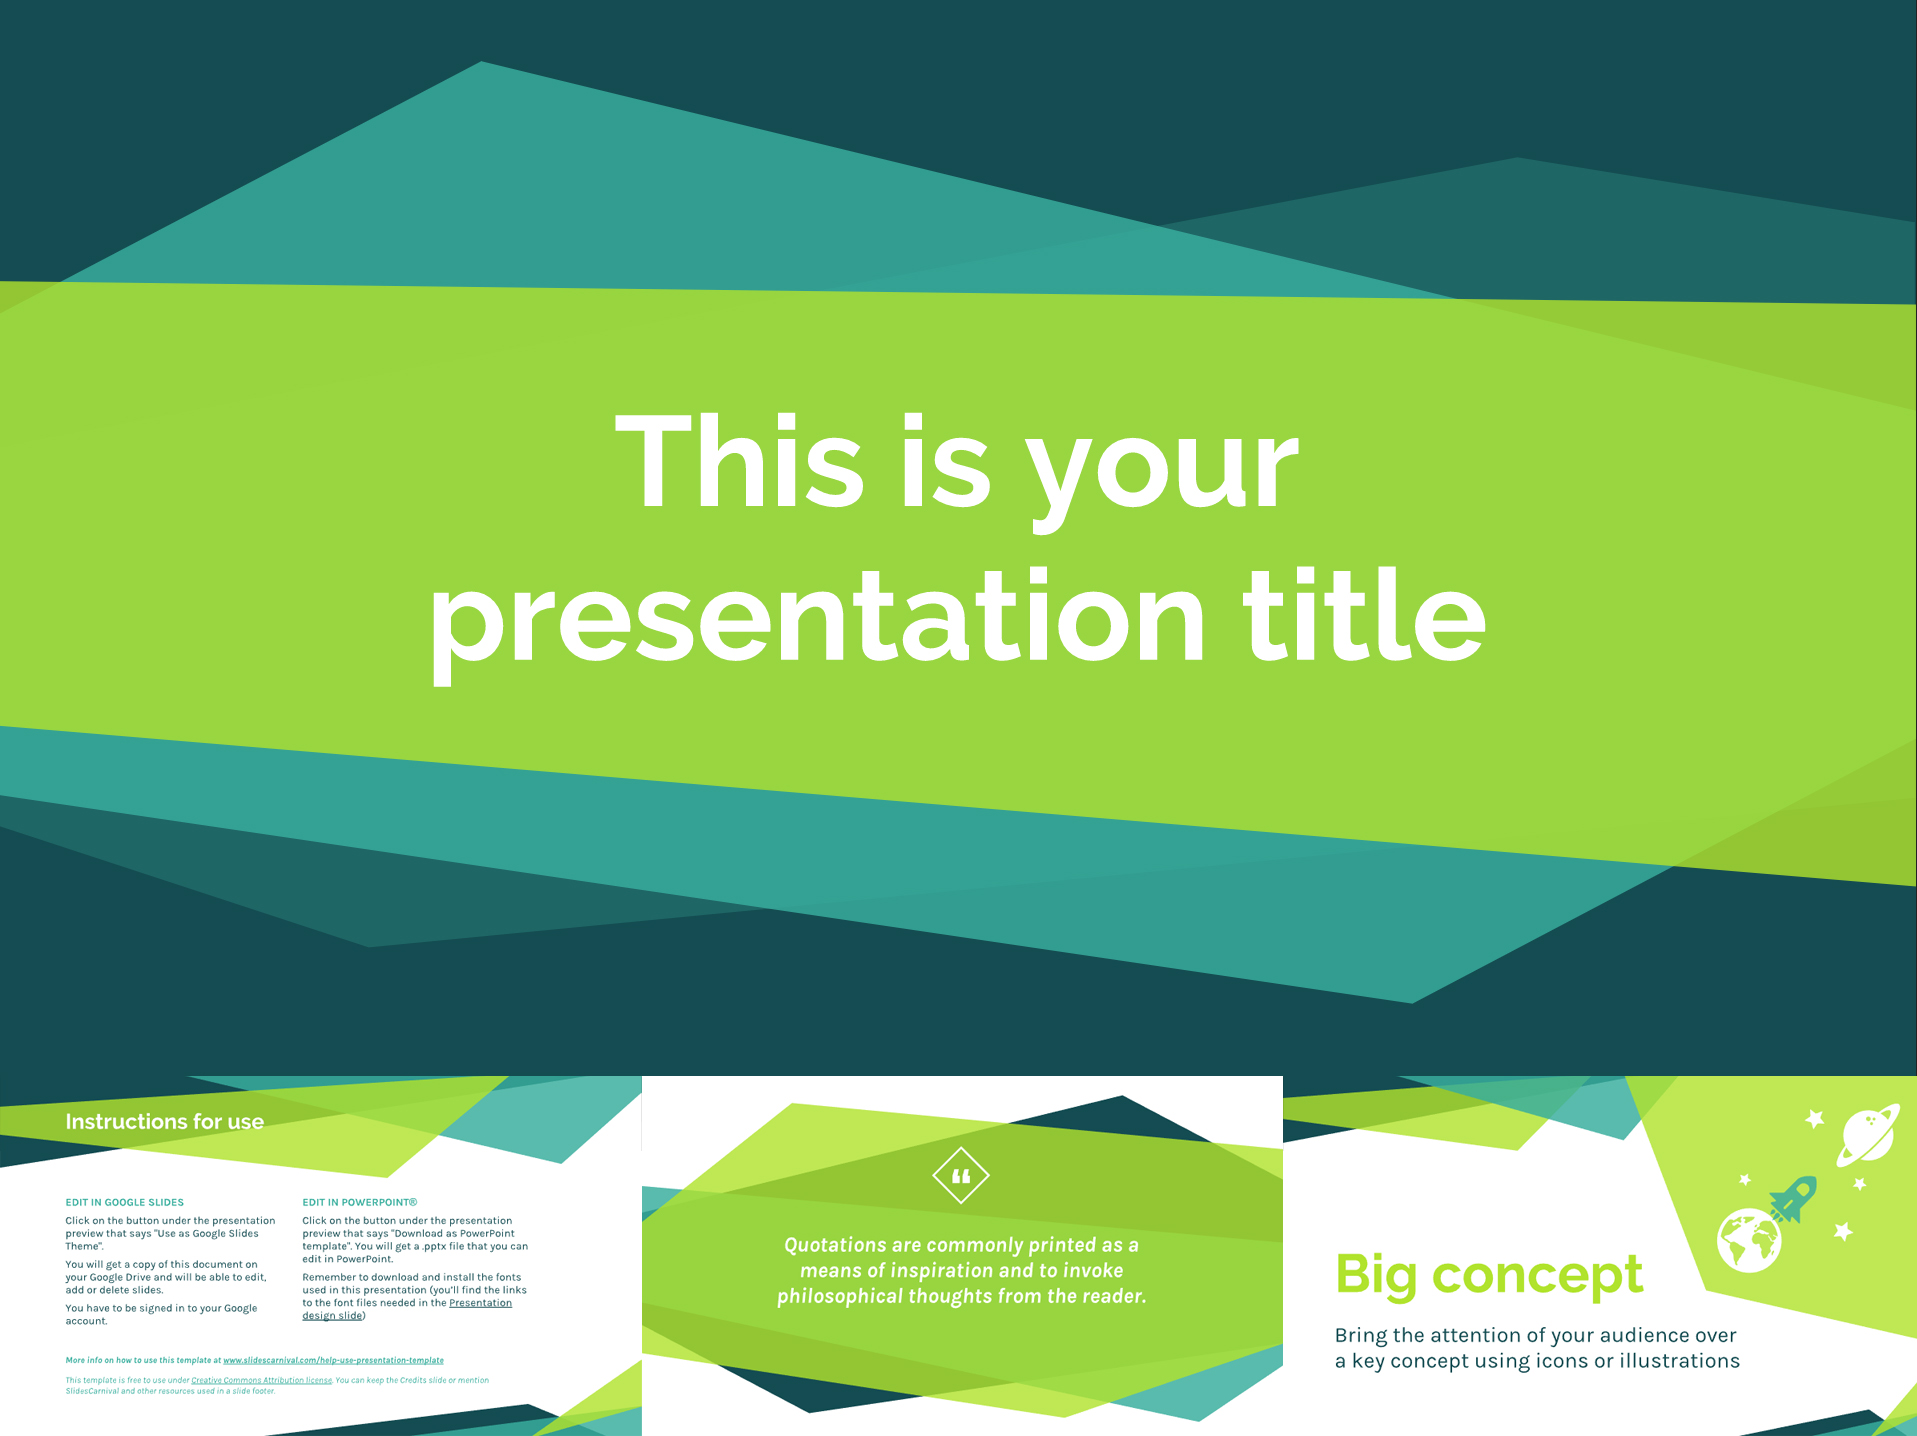 30 free google slides templates for your next presentation free google slides templates in fresh colors toneelgroepblik Choice Image